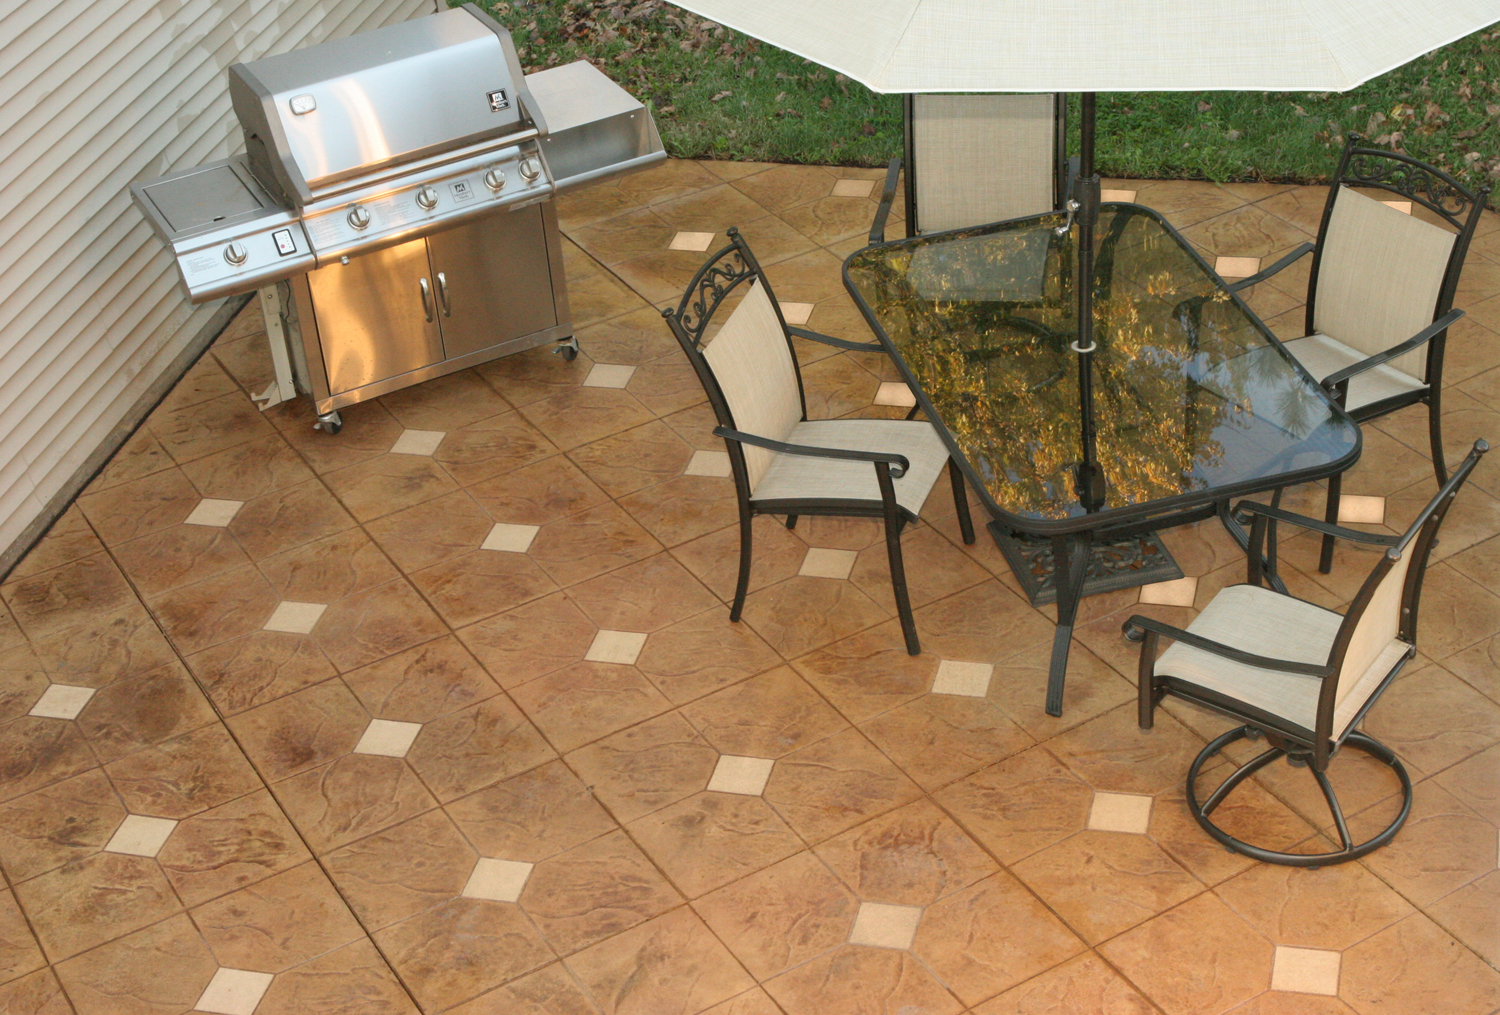 "Legacy 14"" Tile with 6"" insert, Solomon Colors Rosemary, Brickform RA Desert Tan, GemSeal"